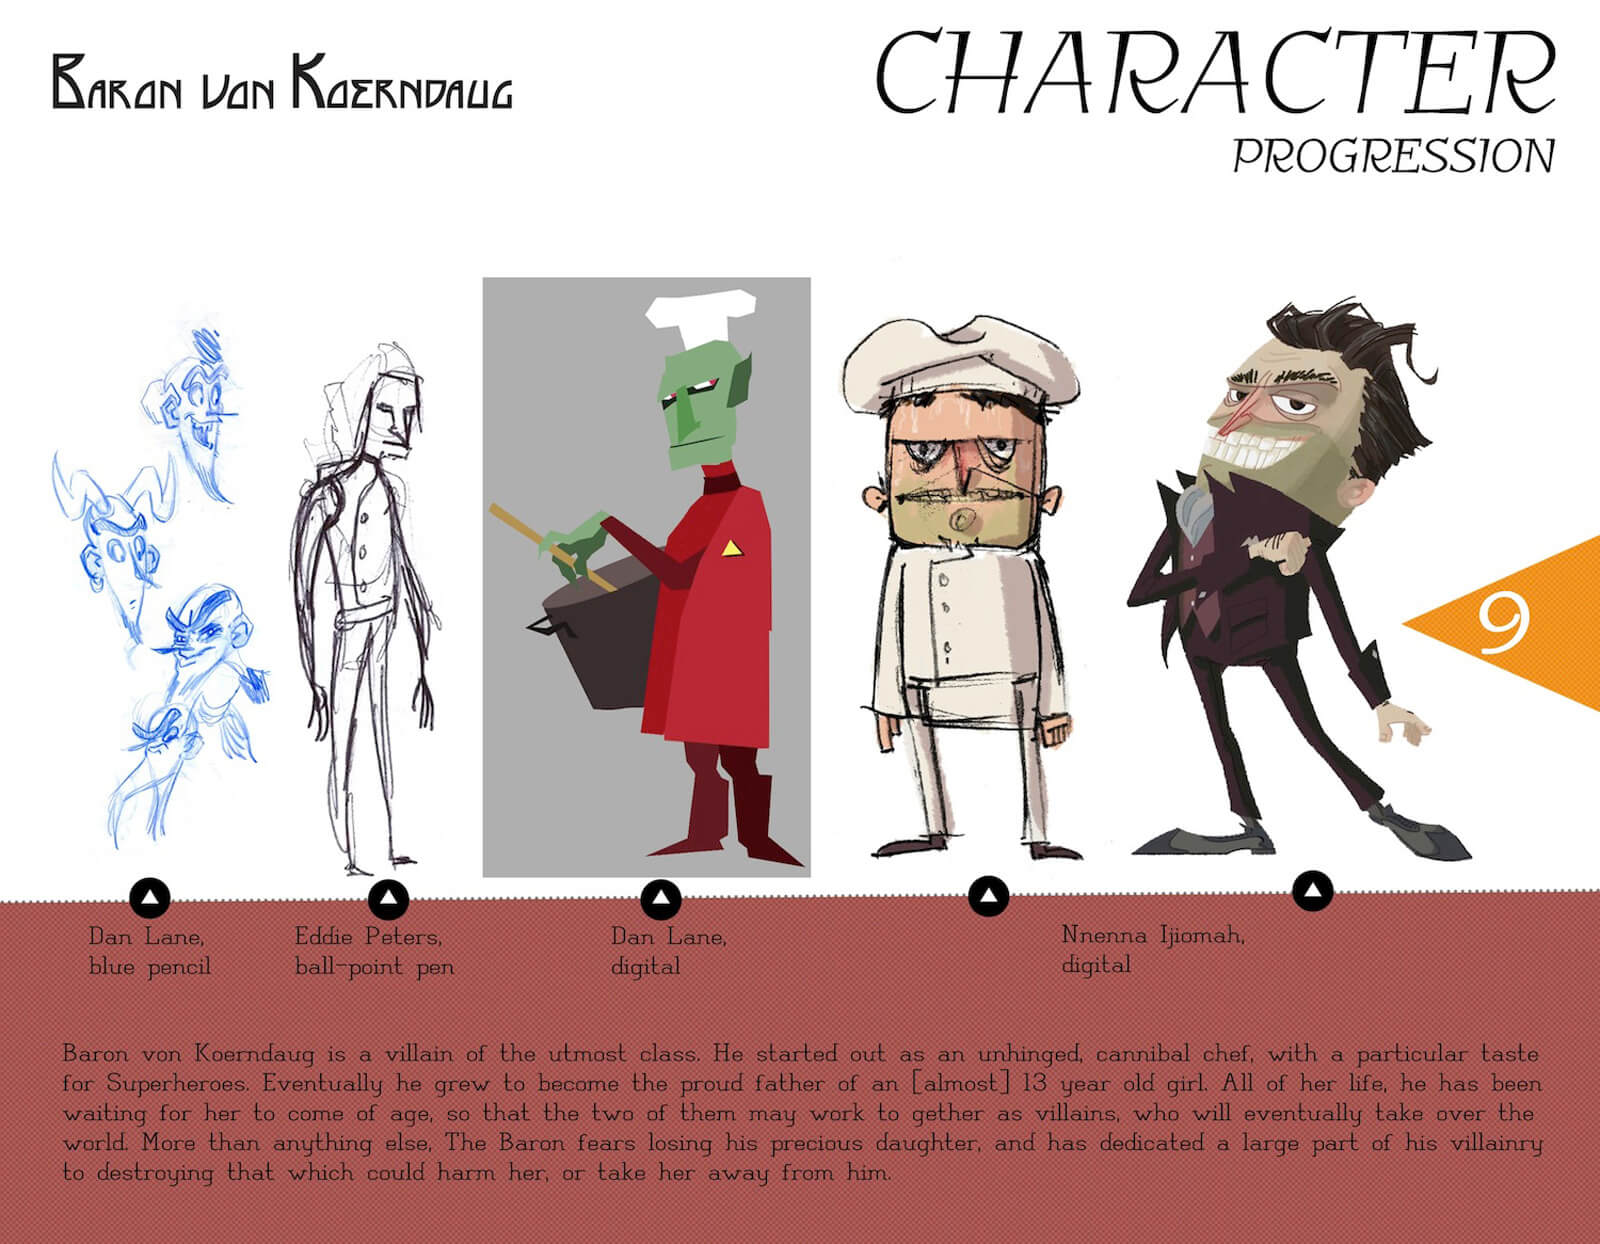 Character progression slide for the character of Baron von Koerndaug, from sketches, to color drawings, to final design